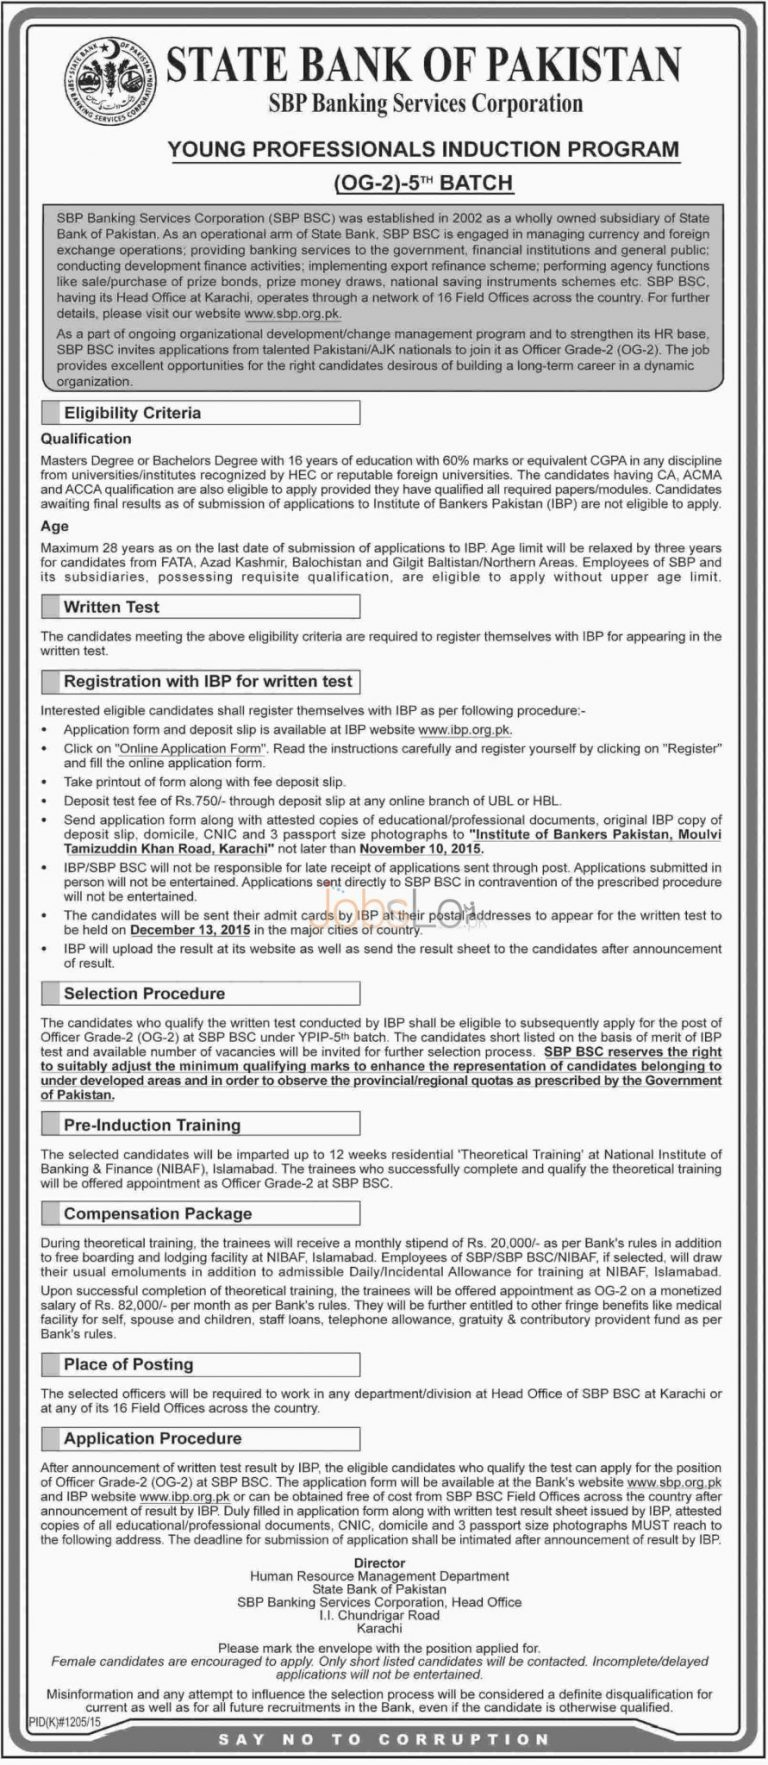 SBP YPIP 5th Batch 2015 Apply Online Young Professionals Induction Program